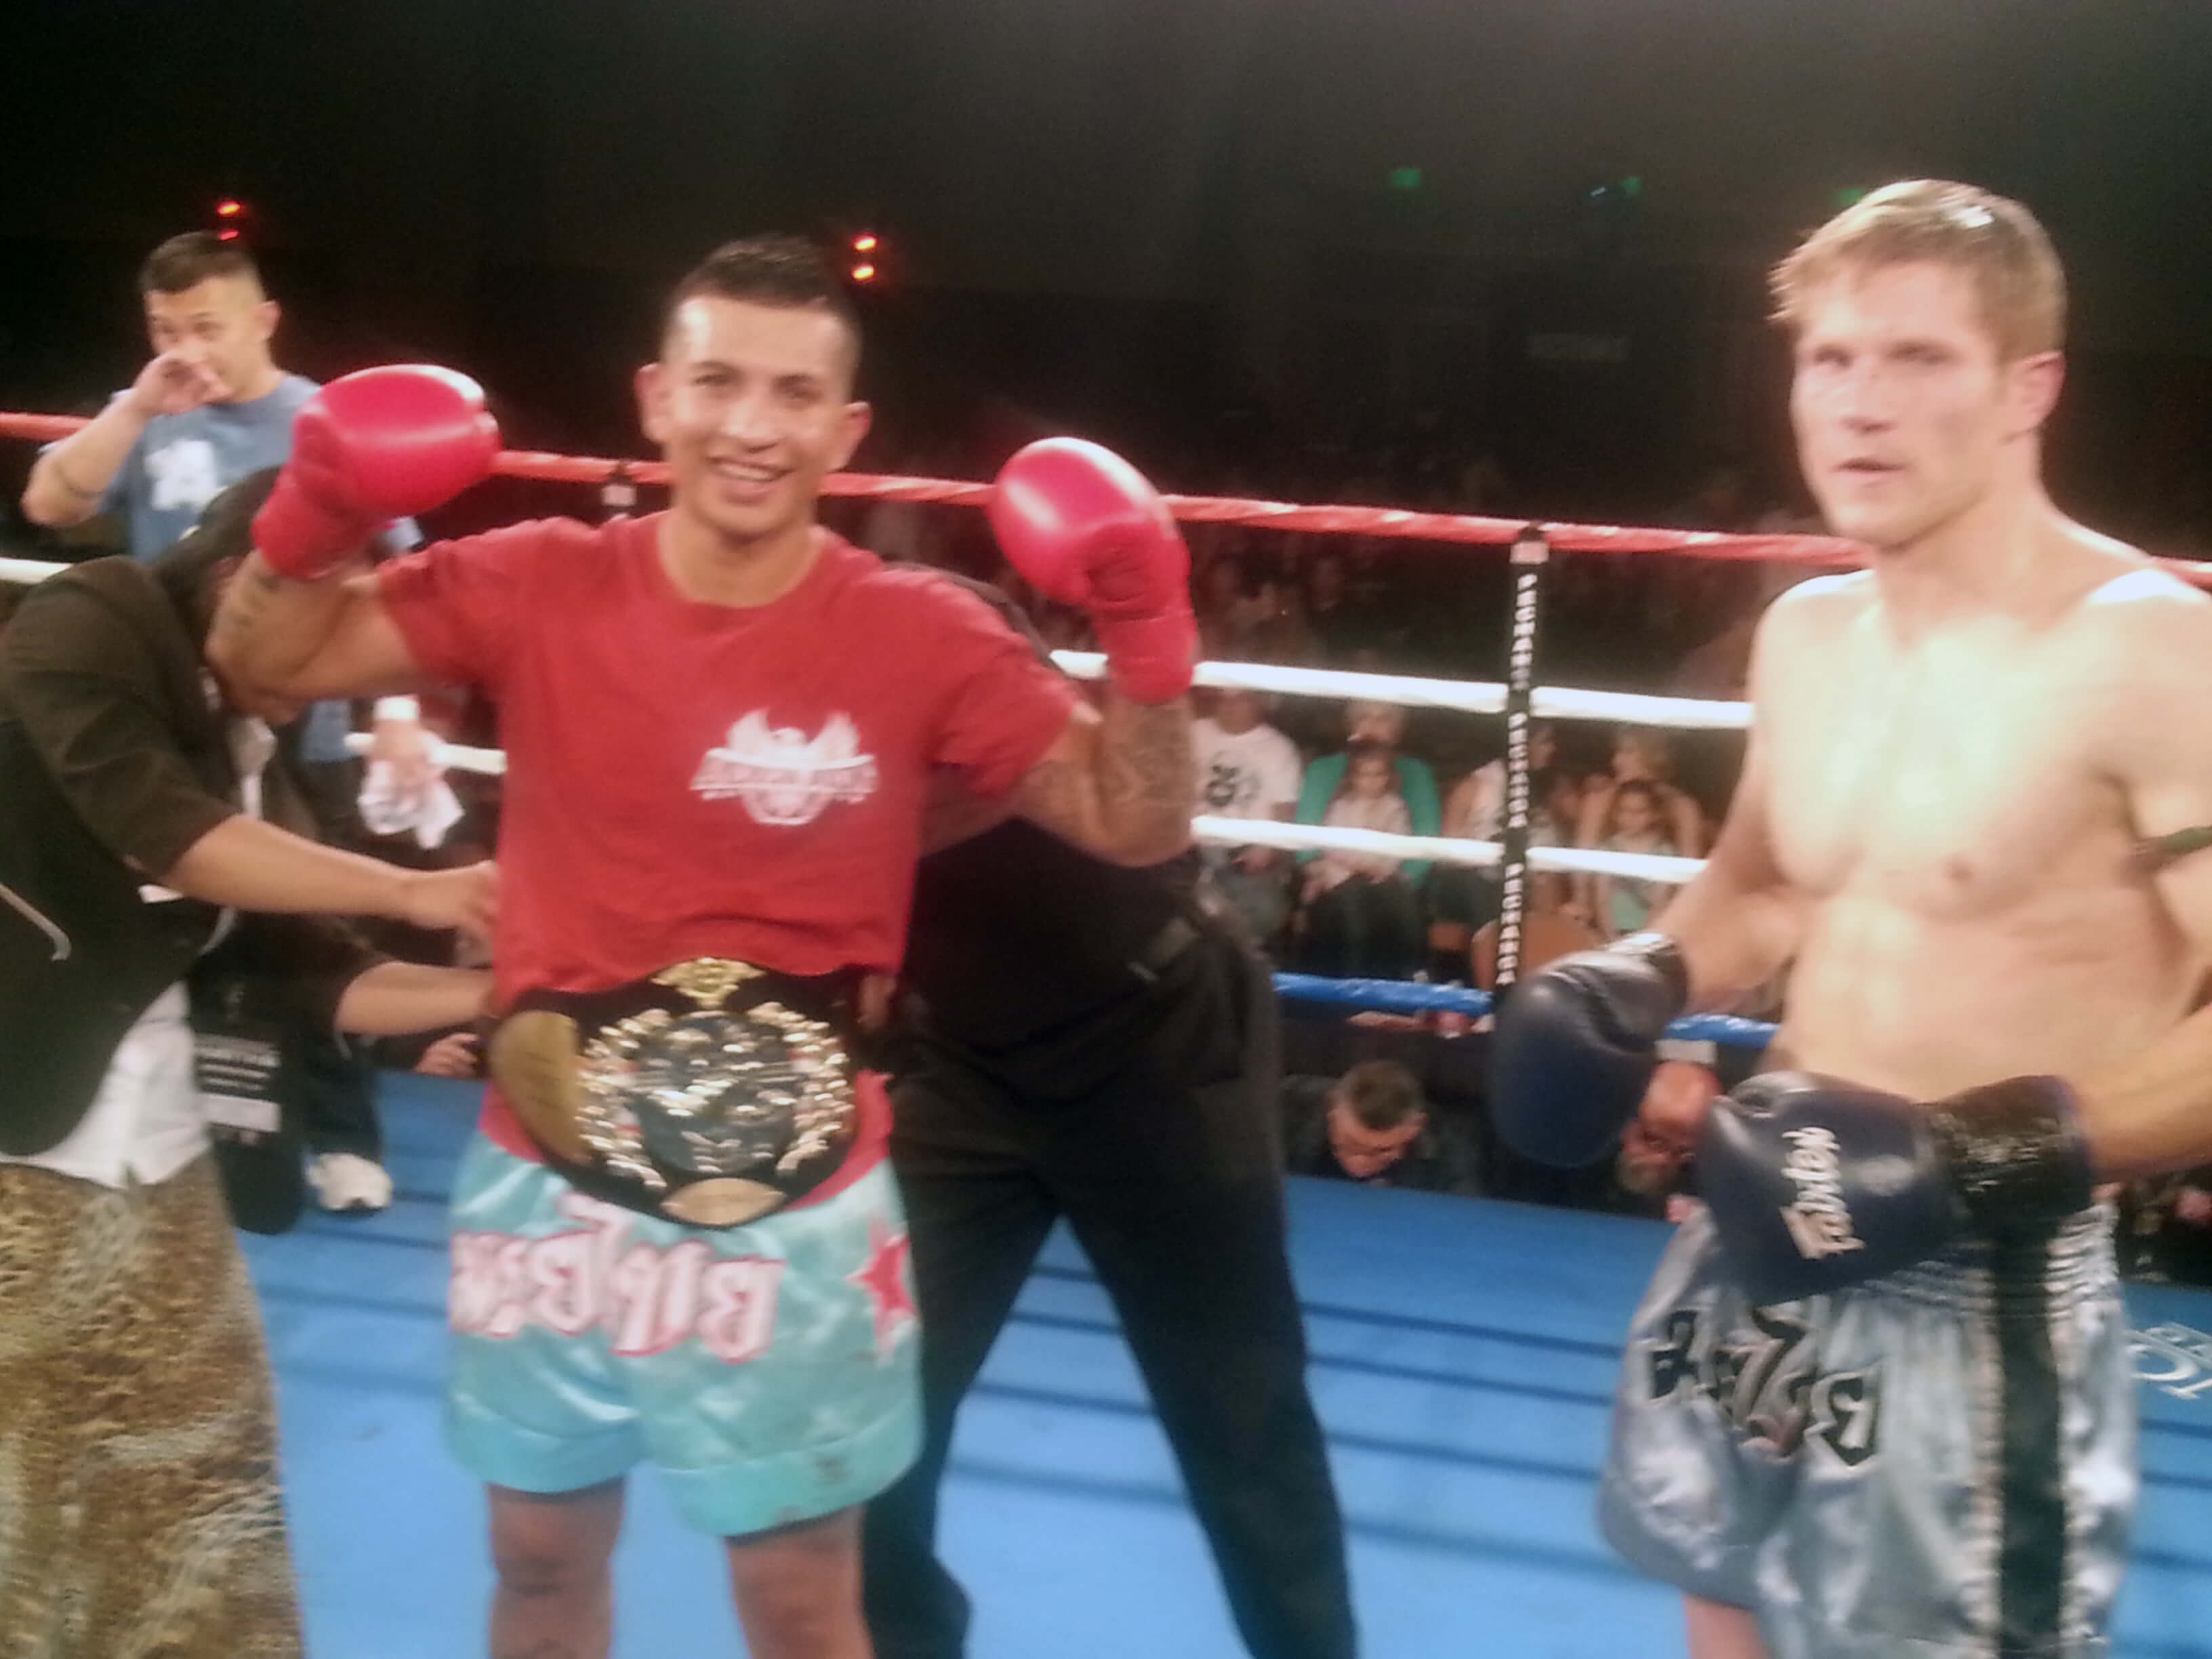 Team Nielsen Fighter Francisco Garcia Muay Thai Champion